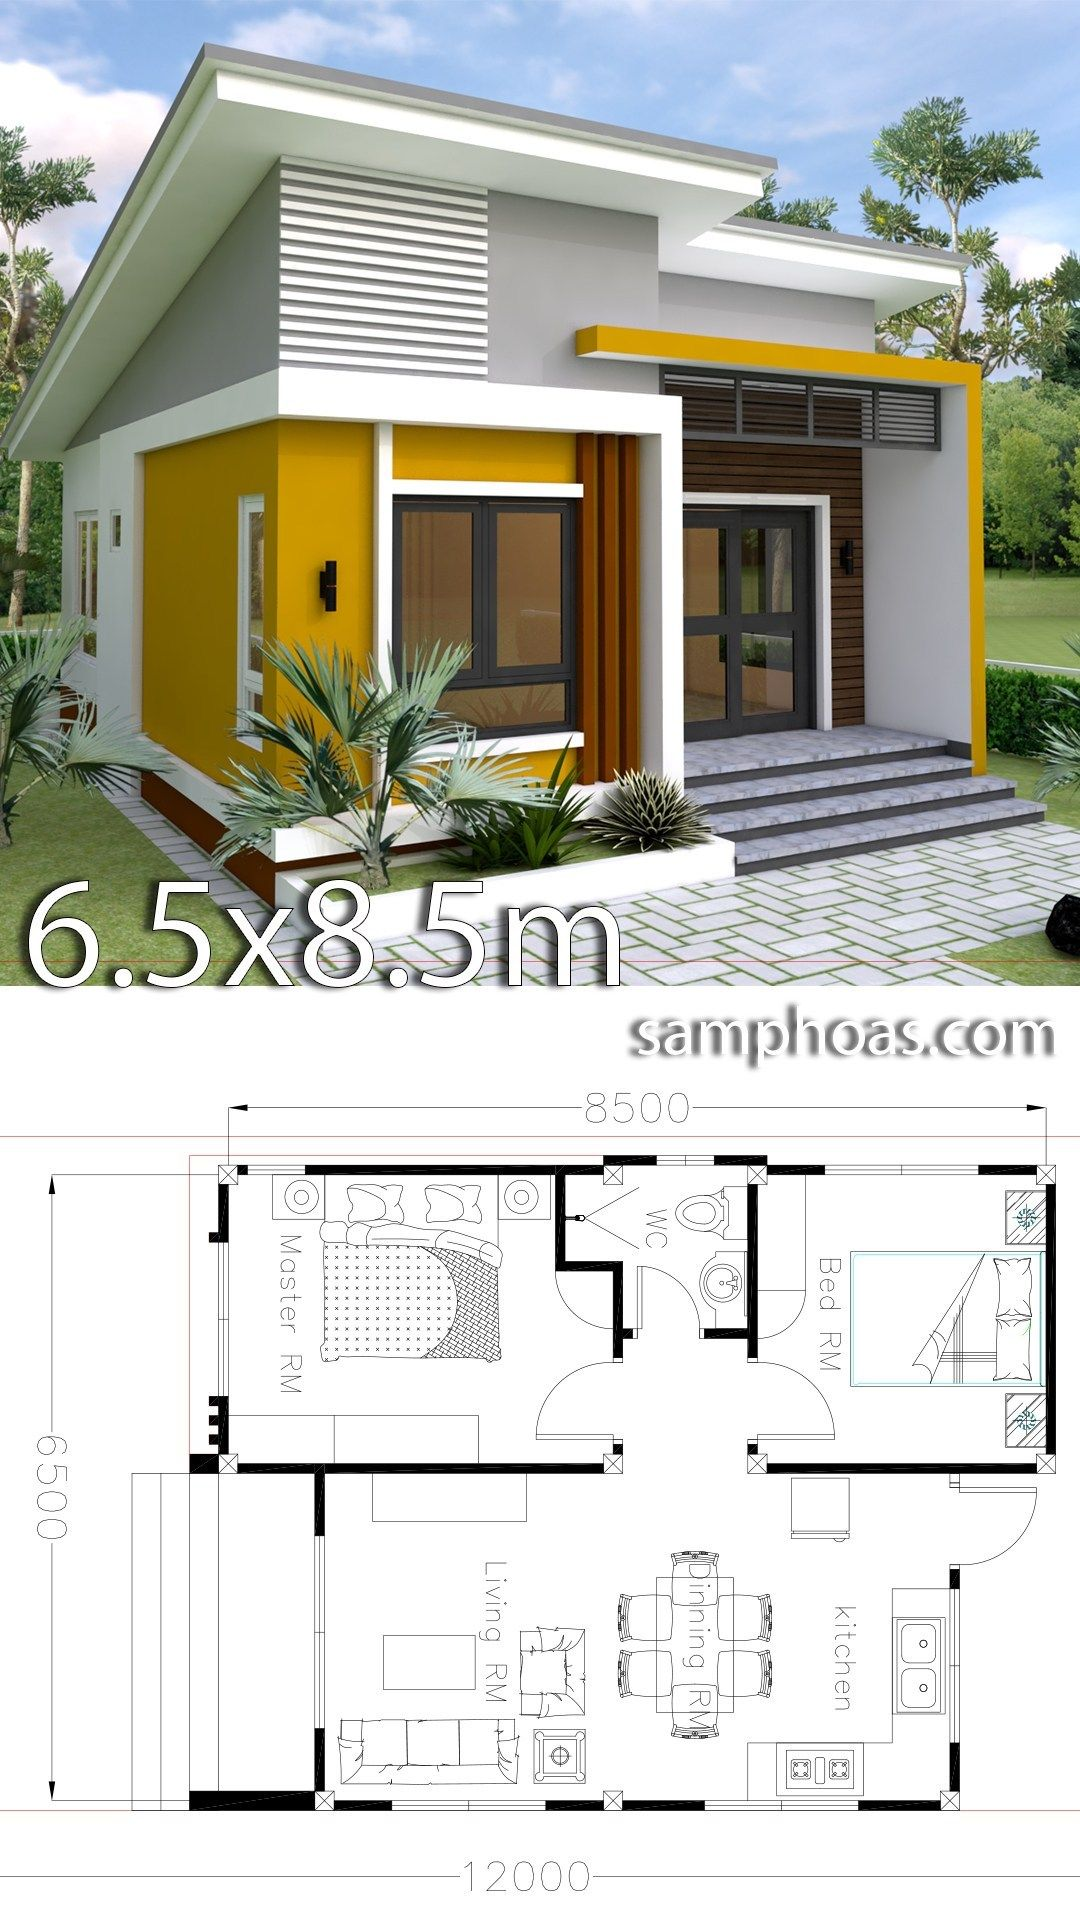 Small Home Design Plan 6 5x8 5m With 2 Bedrooms Simple